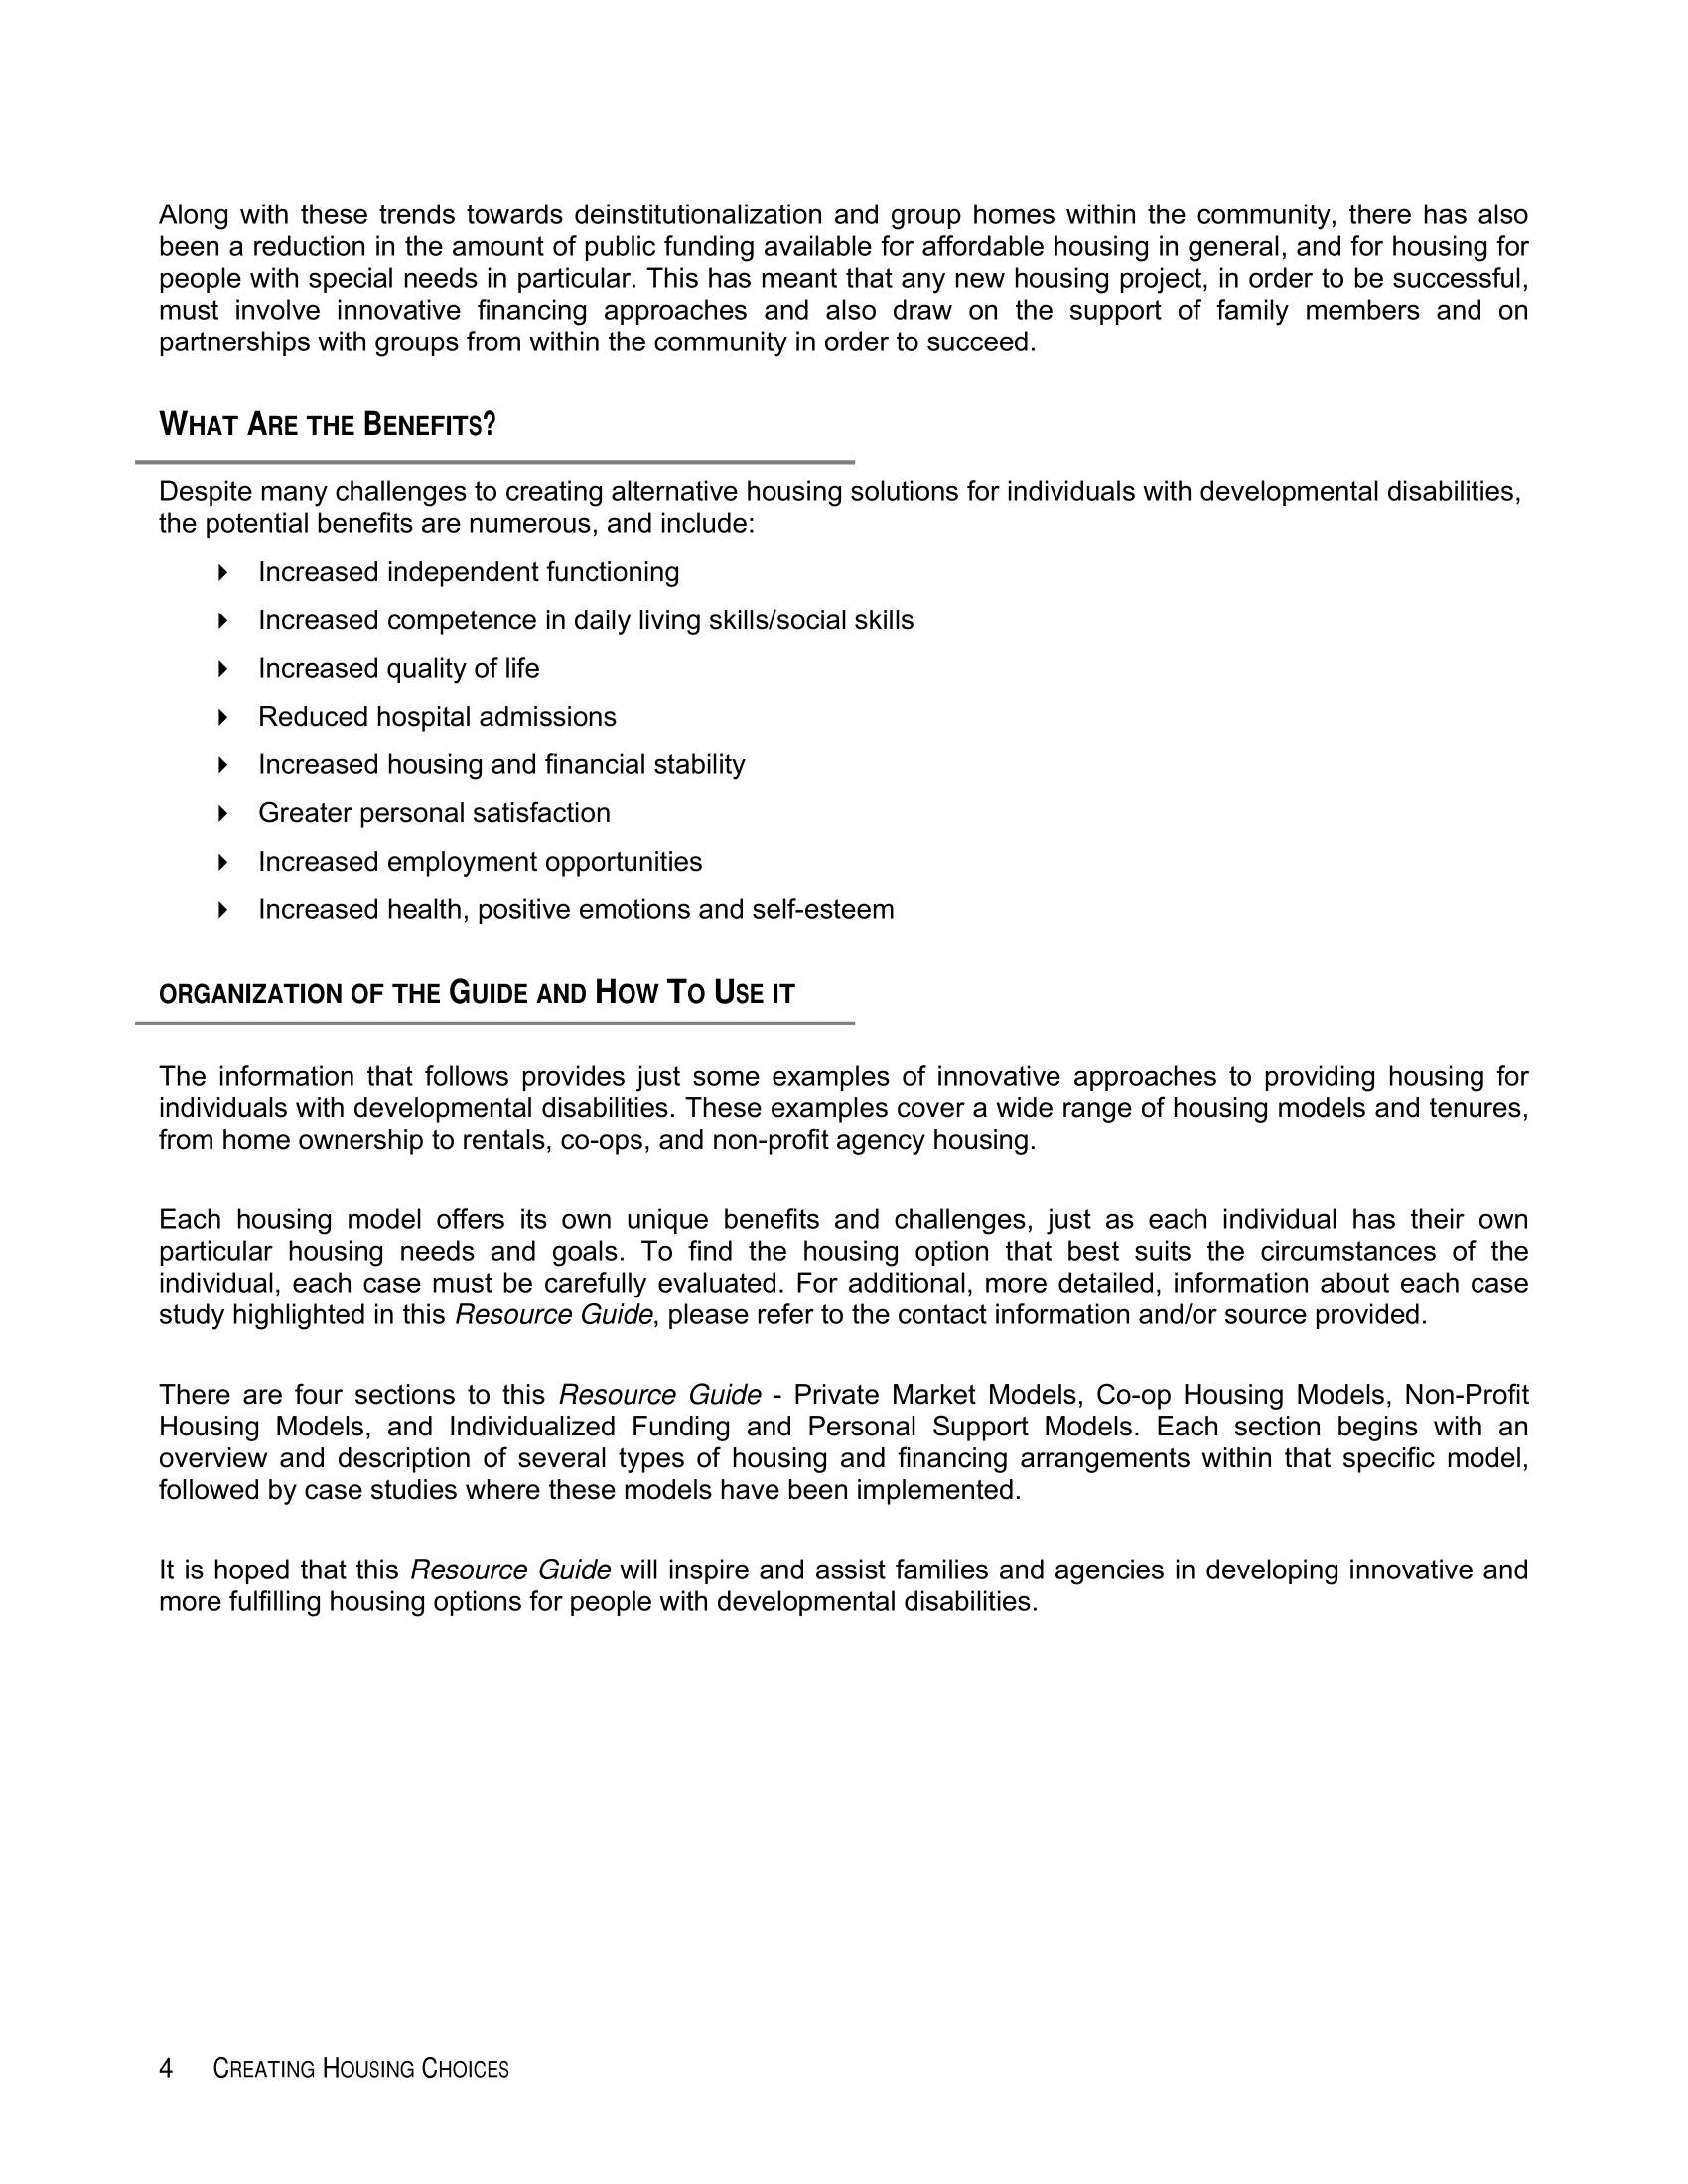 Creating Housing Choices - 2006-05.png